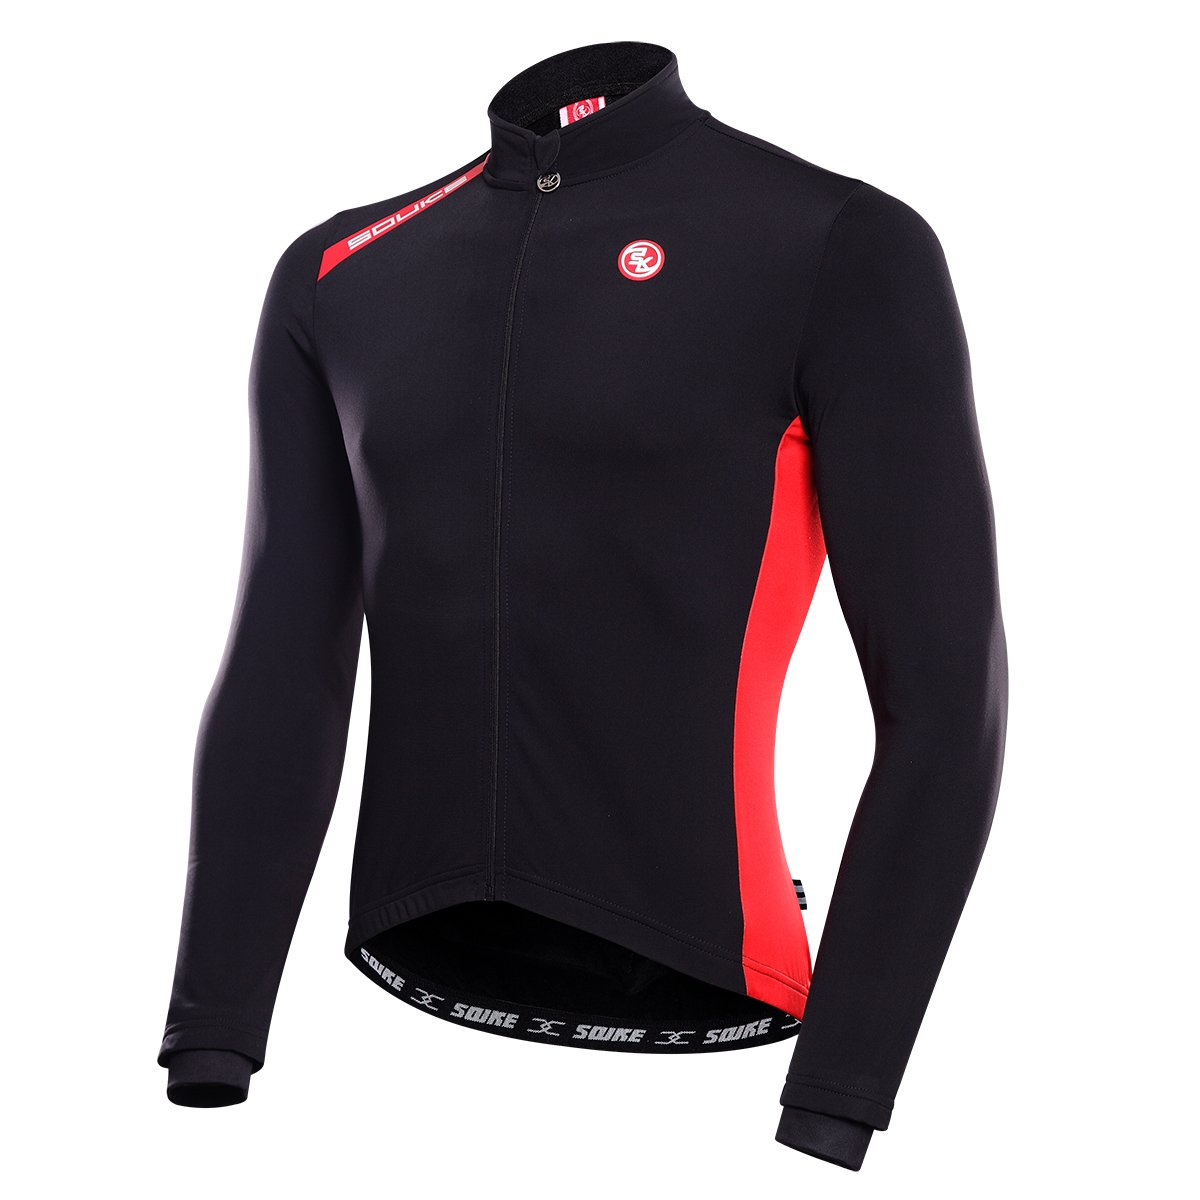 Amazon.com  Women and Men s Long Sleeve Bike Bicycle Riding Cycling Jersey  Couple Models Jacket Windproof Thermal for Outdoor  Clothing 14acb3f3b